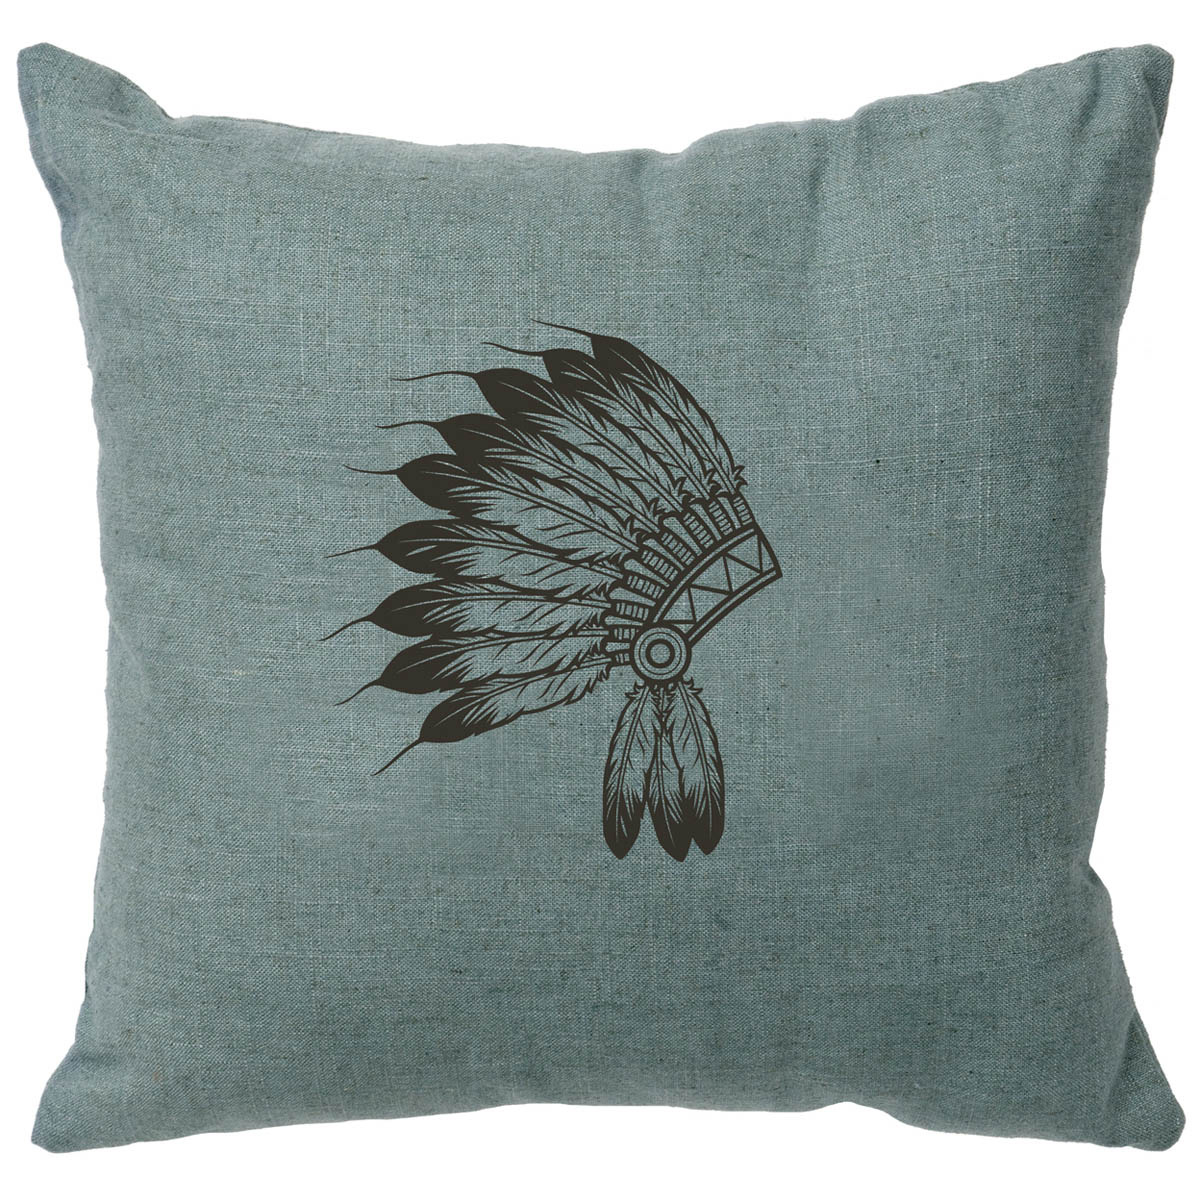 Headdress Linen Pillow - Ocean